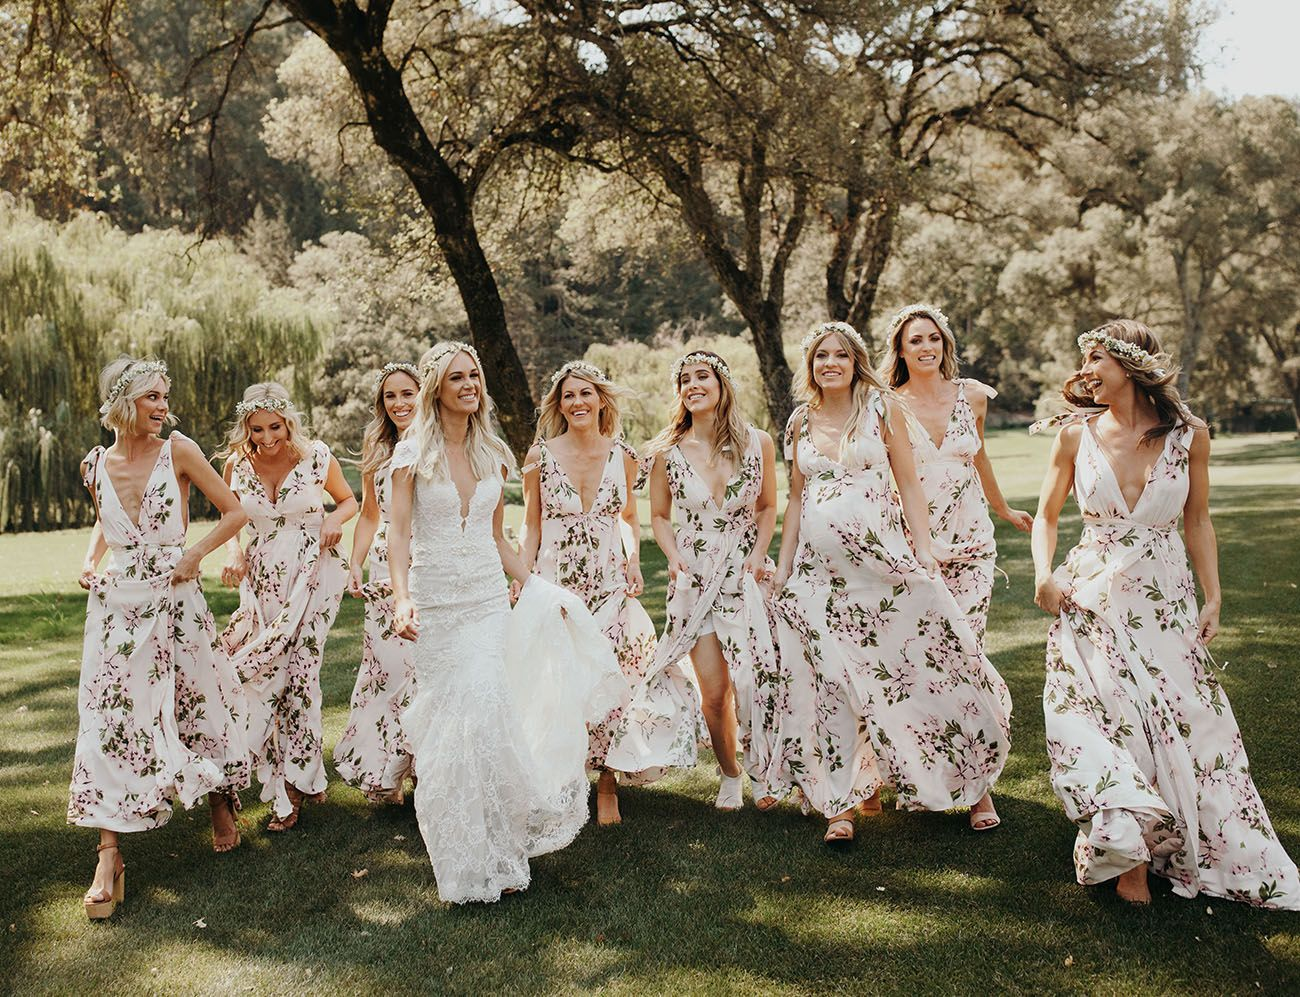 Beach riot founders napa farm wedding floral bridesmaid dresses beach riot founders napa farm wedding floral bridesmaid dressesbridesmaid ombrellifo Image collections